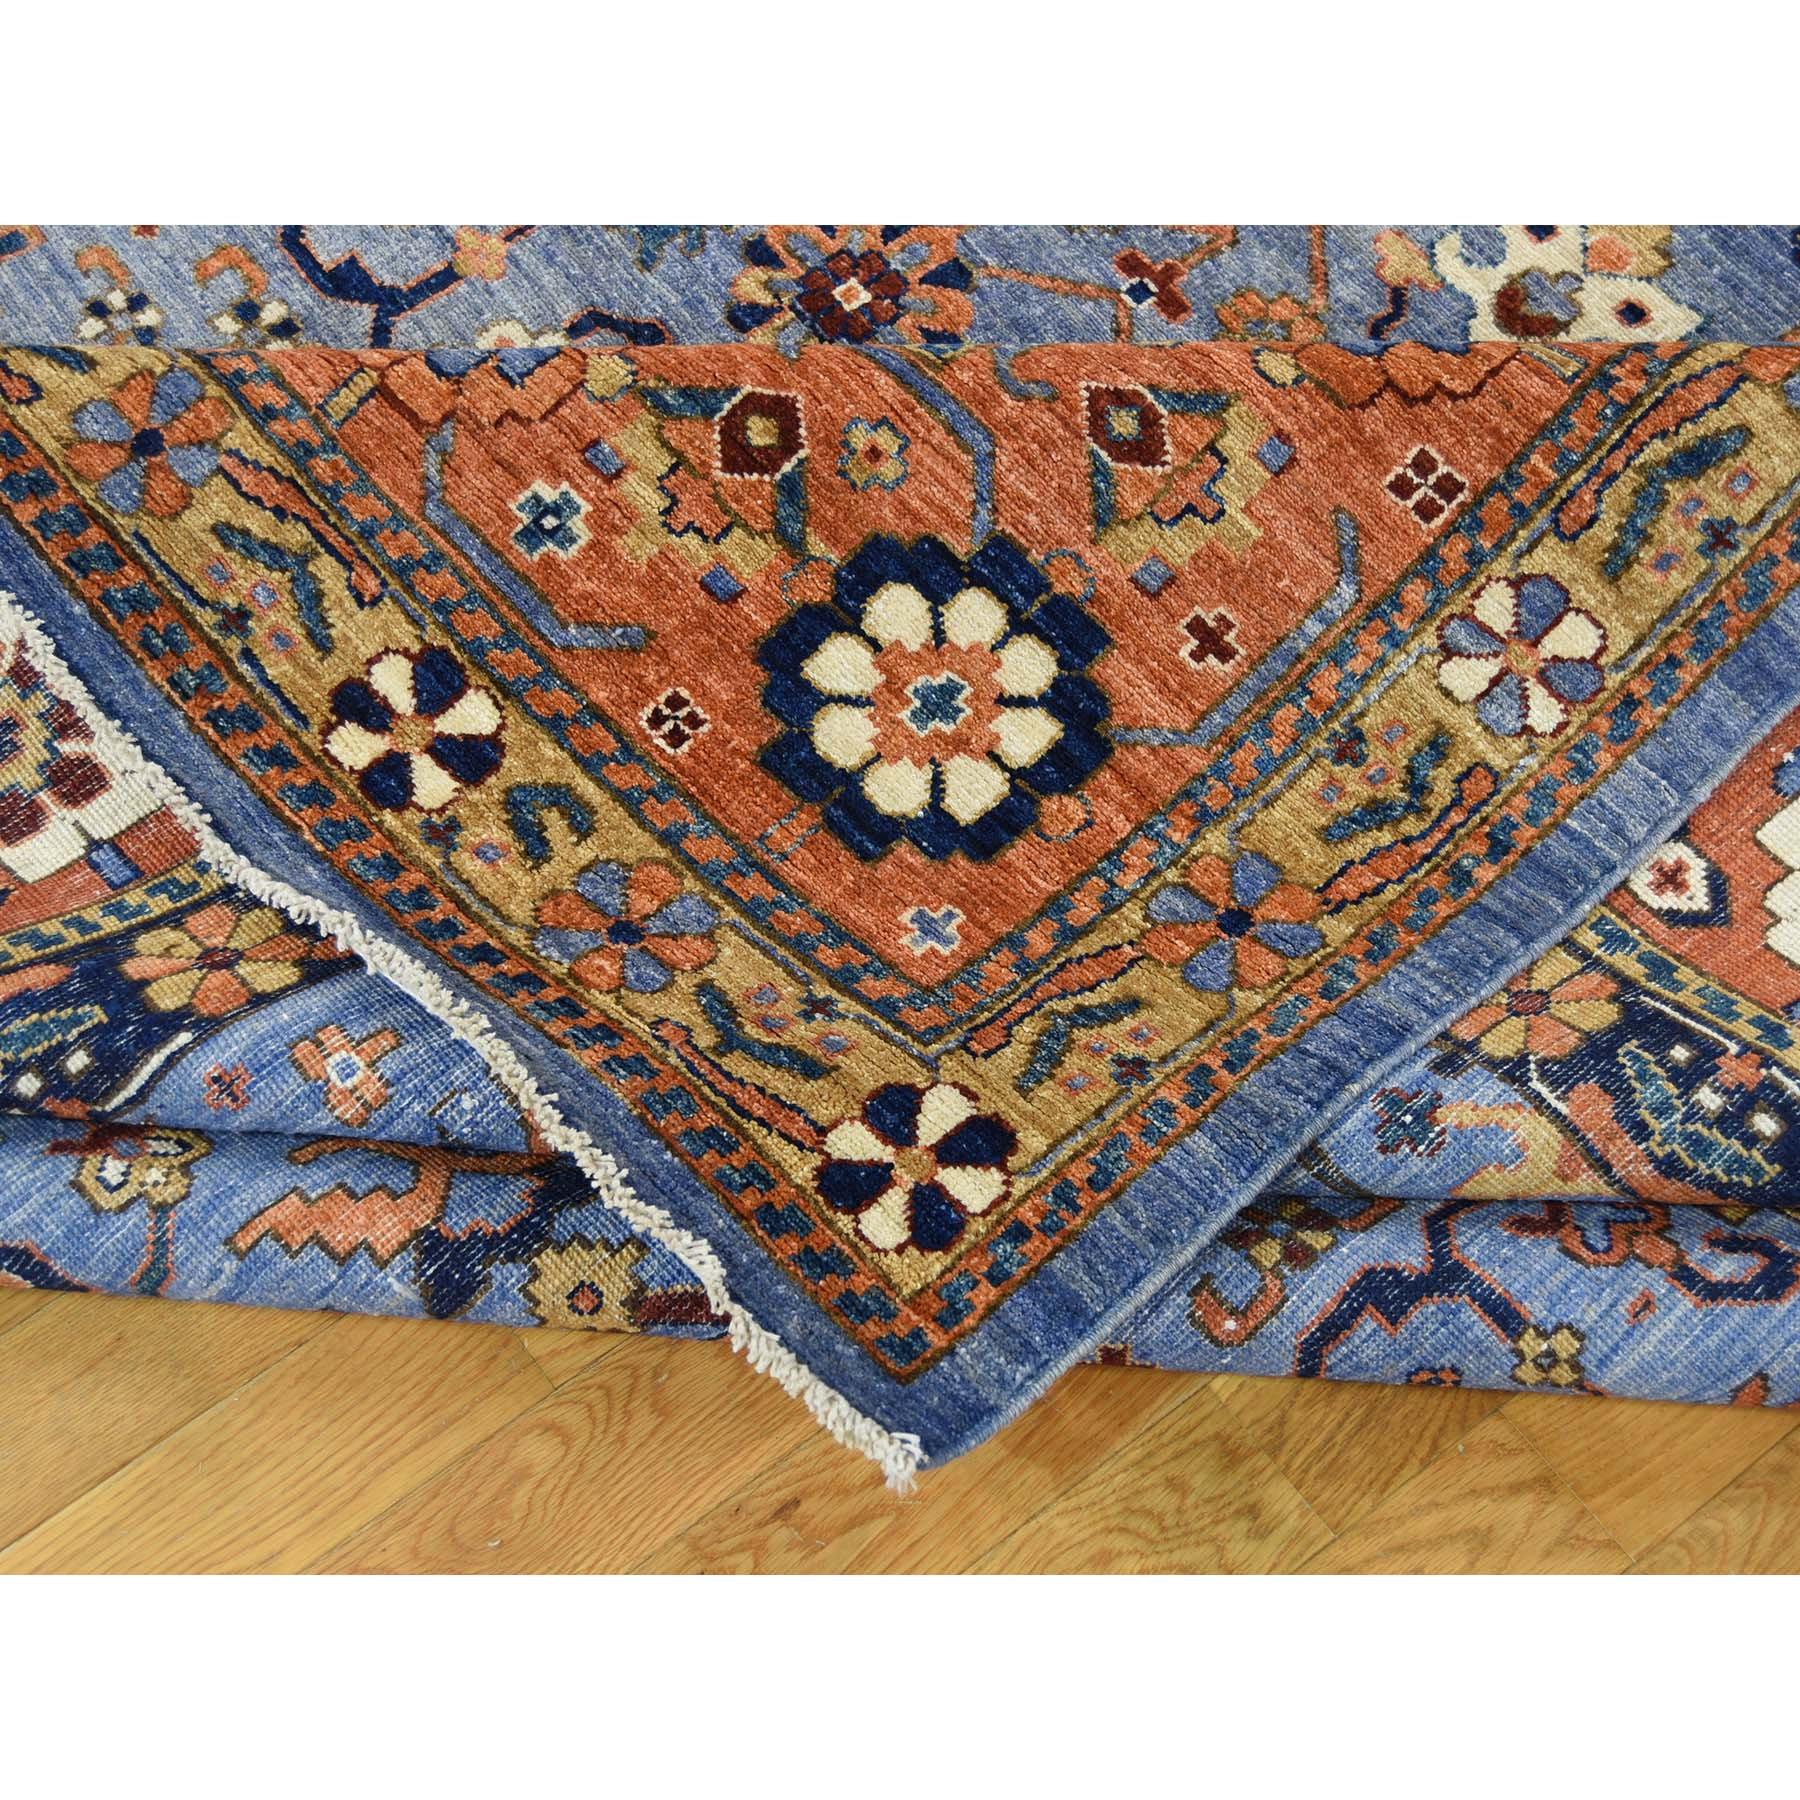 Shahbanu Oriental Carpets And Persian Rugs In The Usa